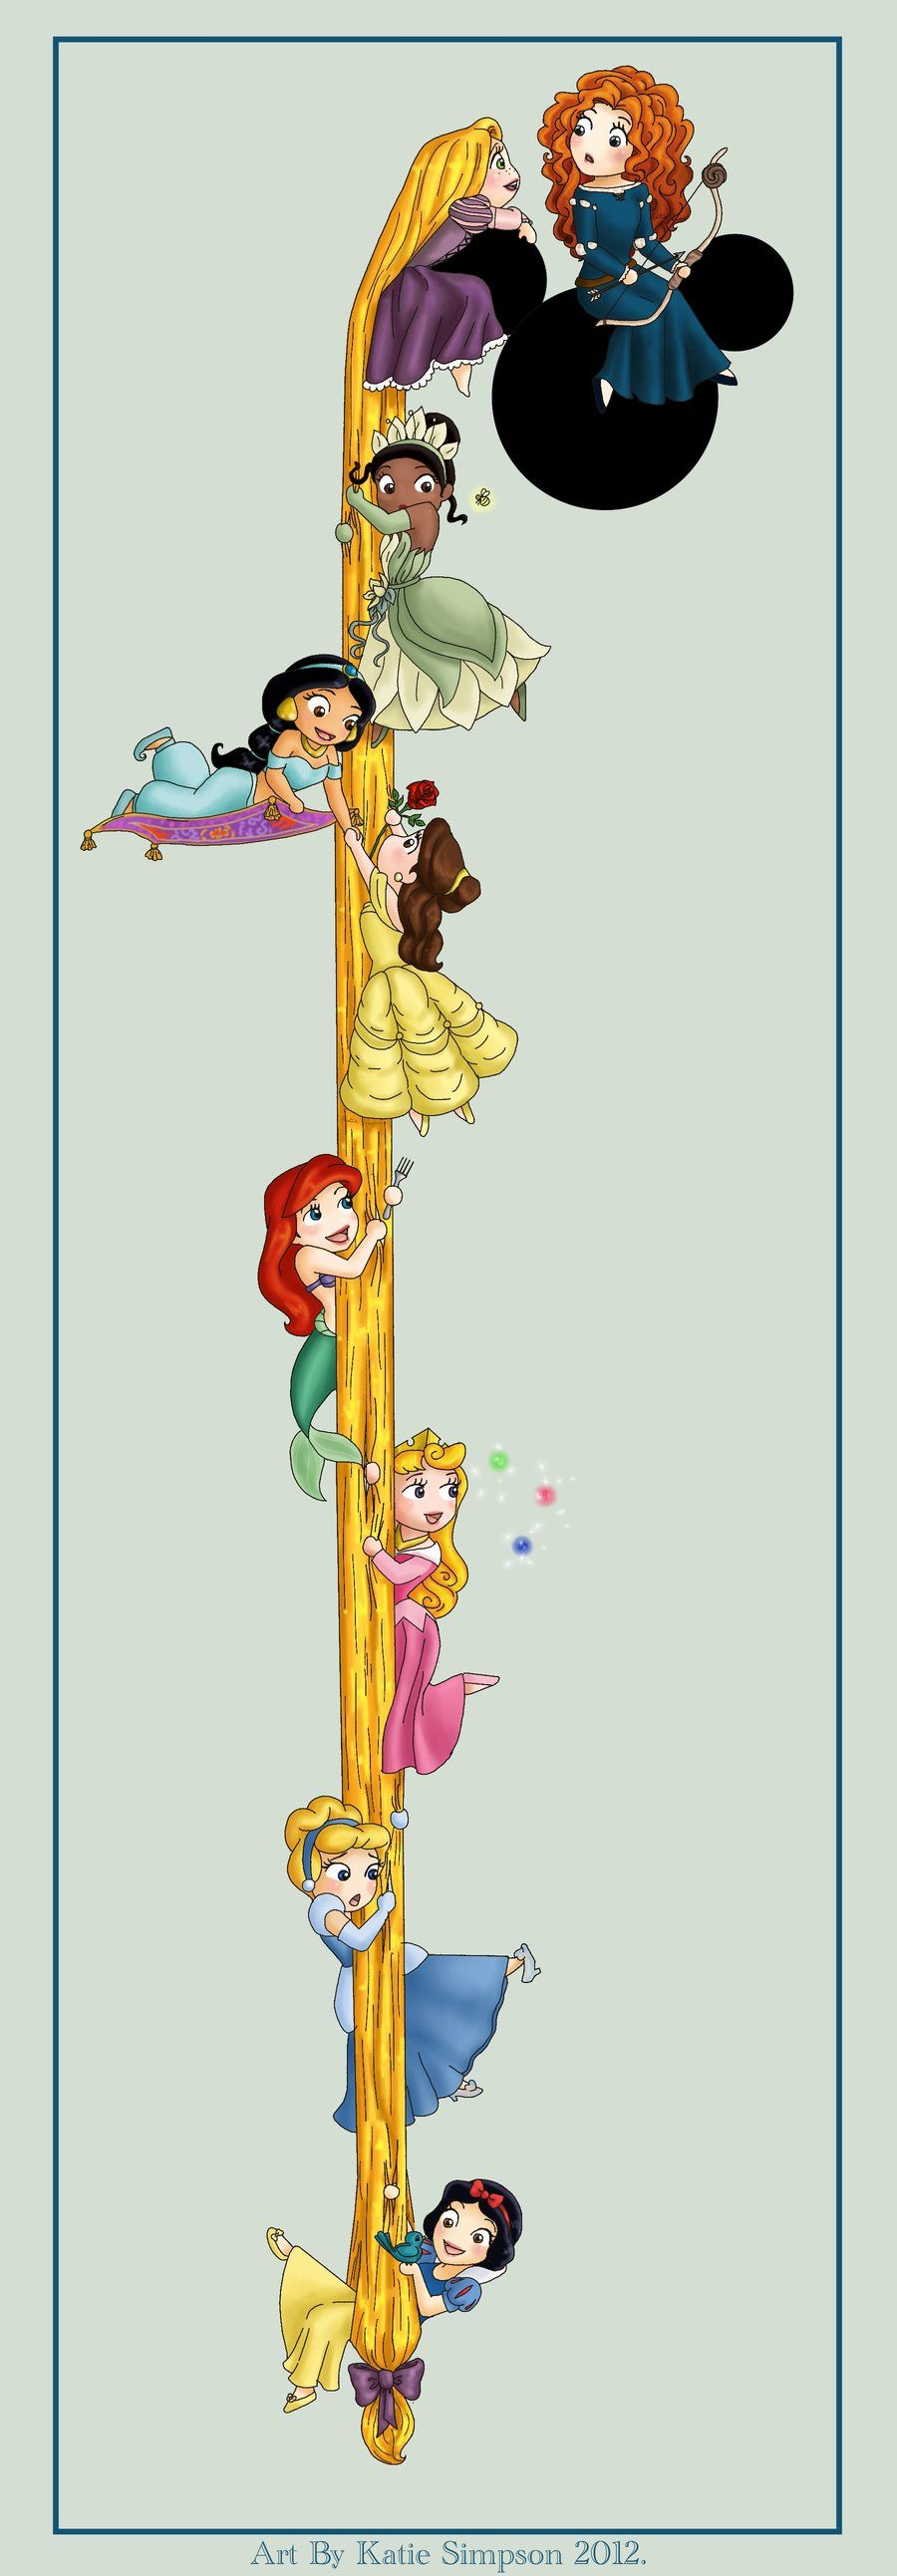 Disney Princesses, chronologically. I know a few girls that would get something like this in an instant.